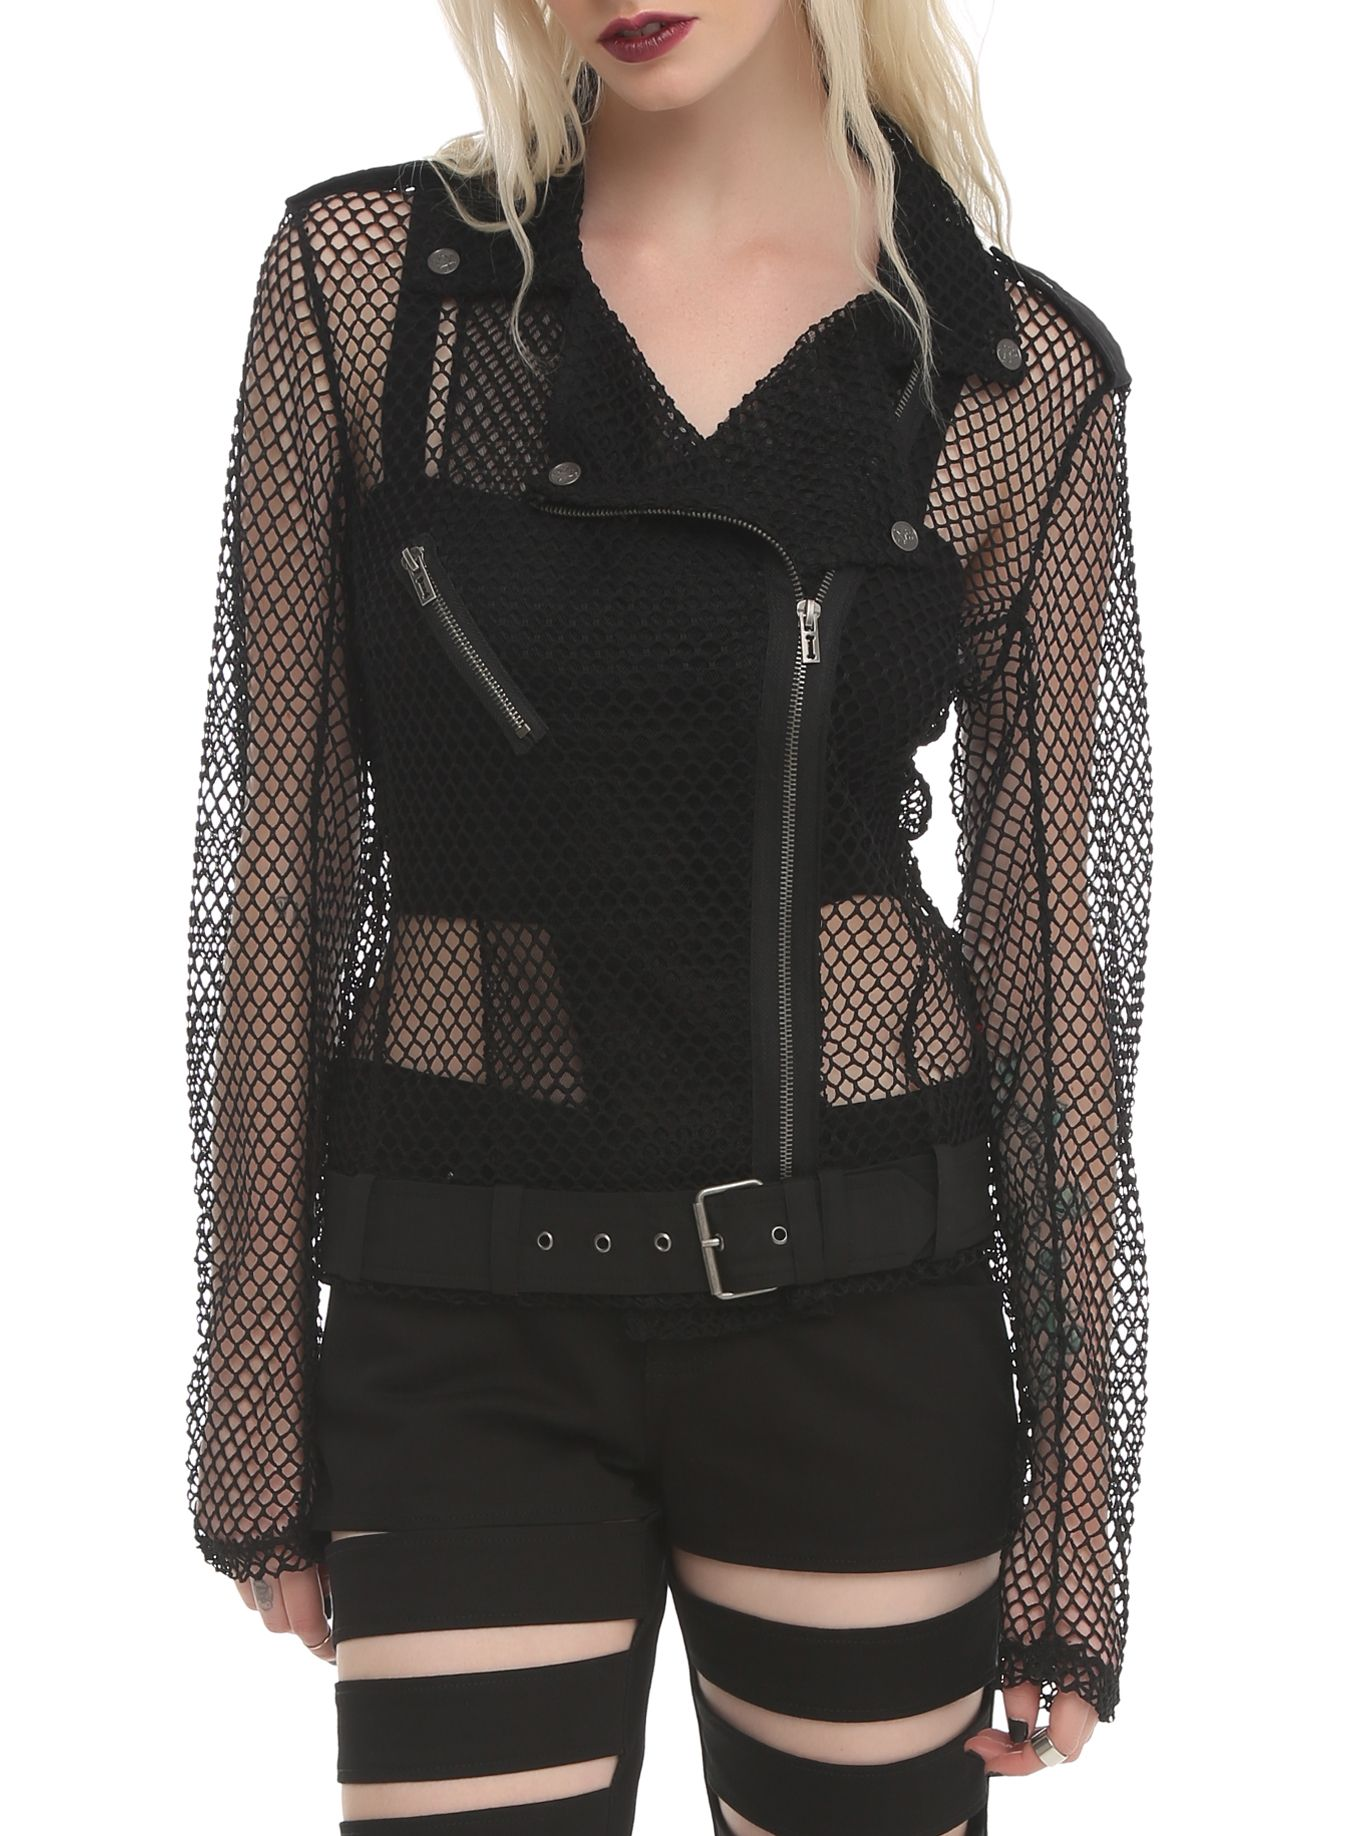 Showin' flesh in our Mesh Moto Jacket.